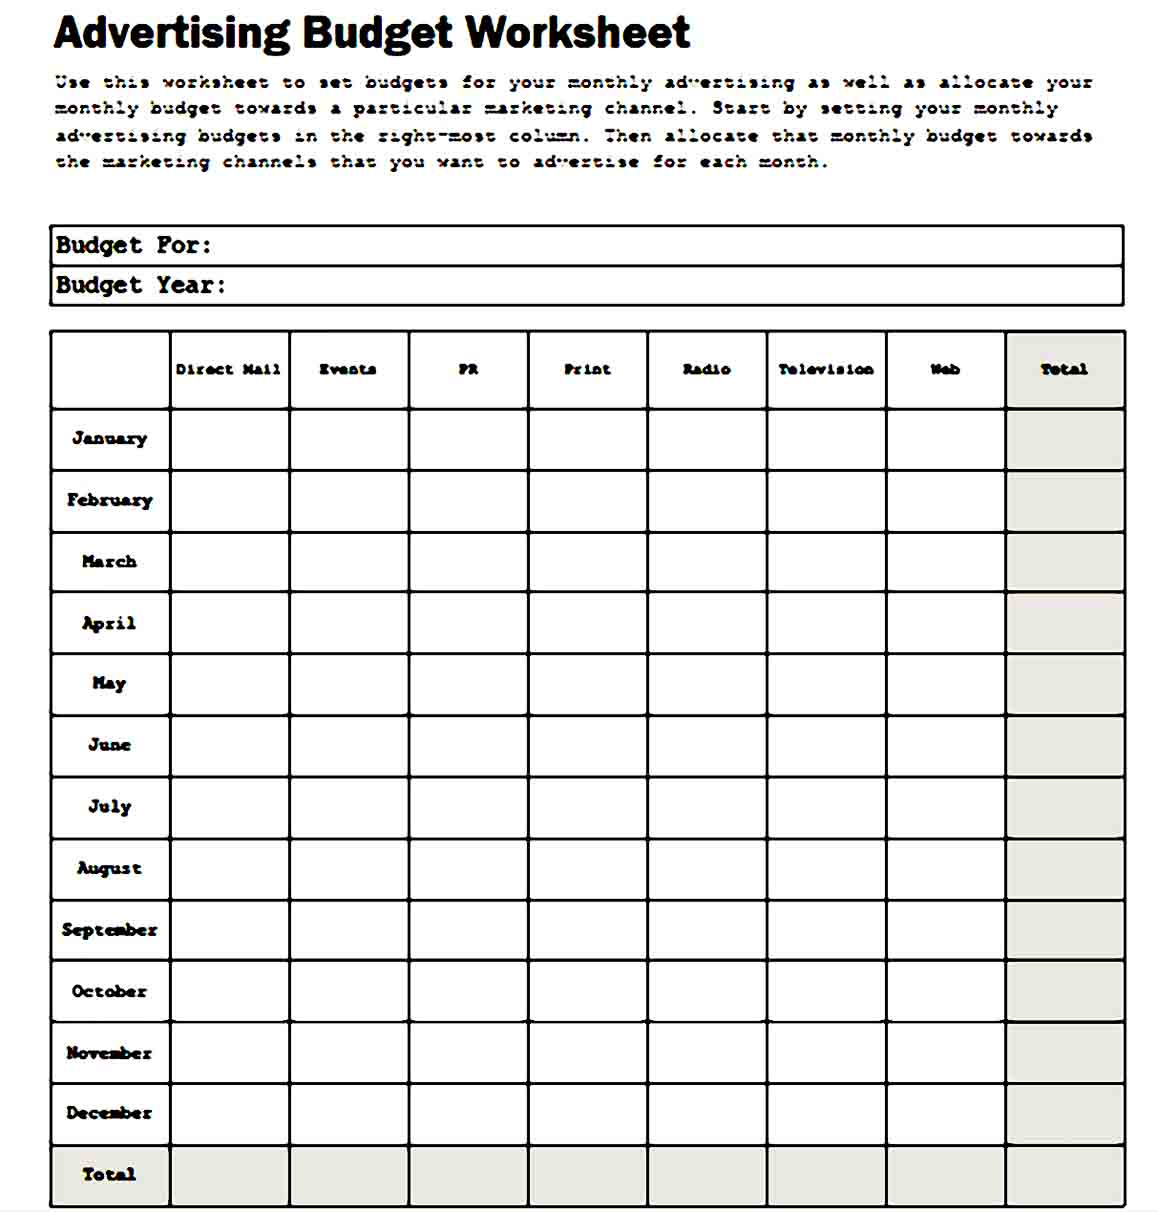 Monthly Advertising Budget